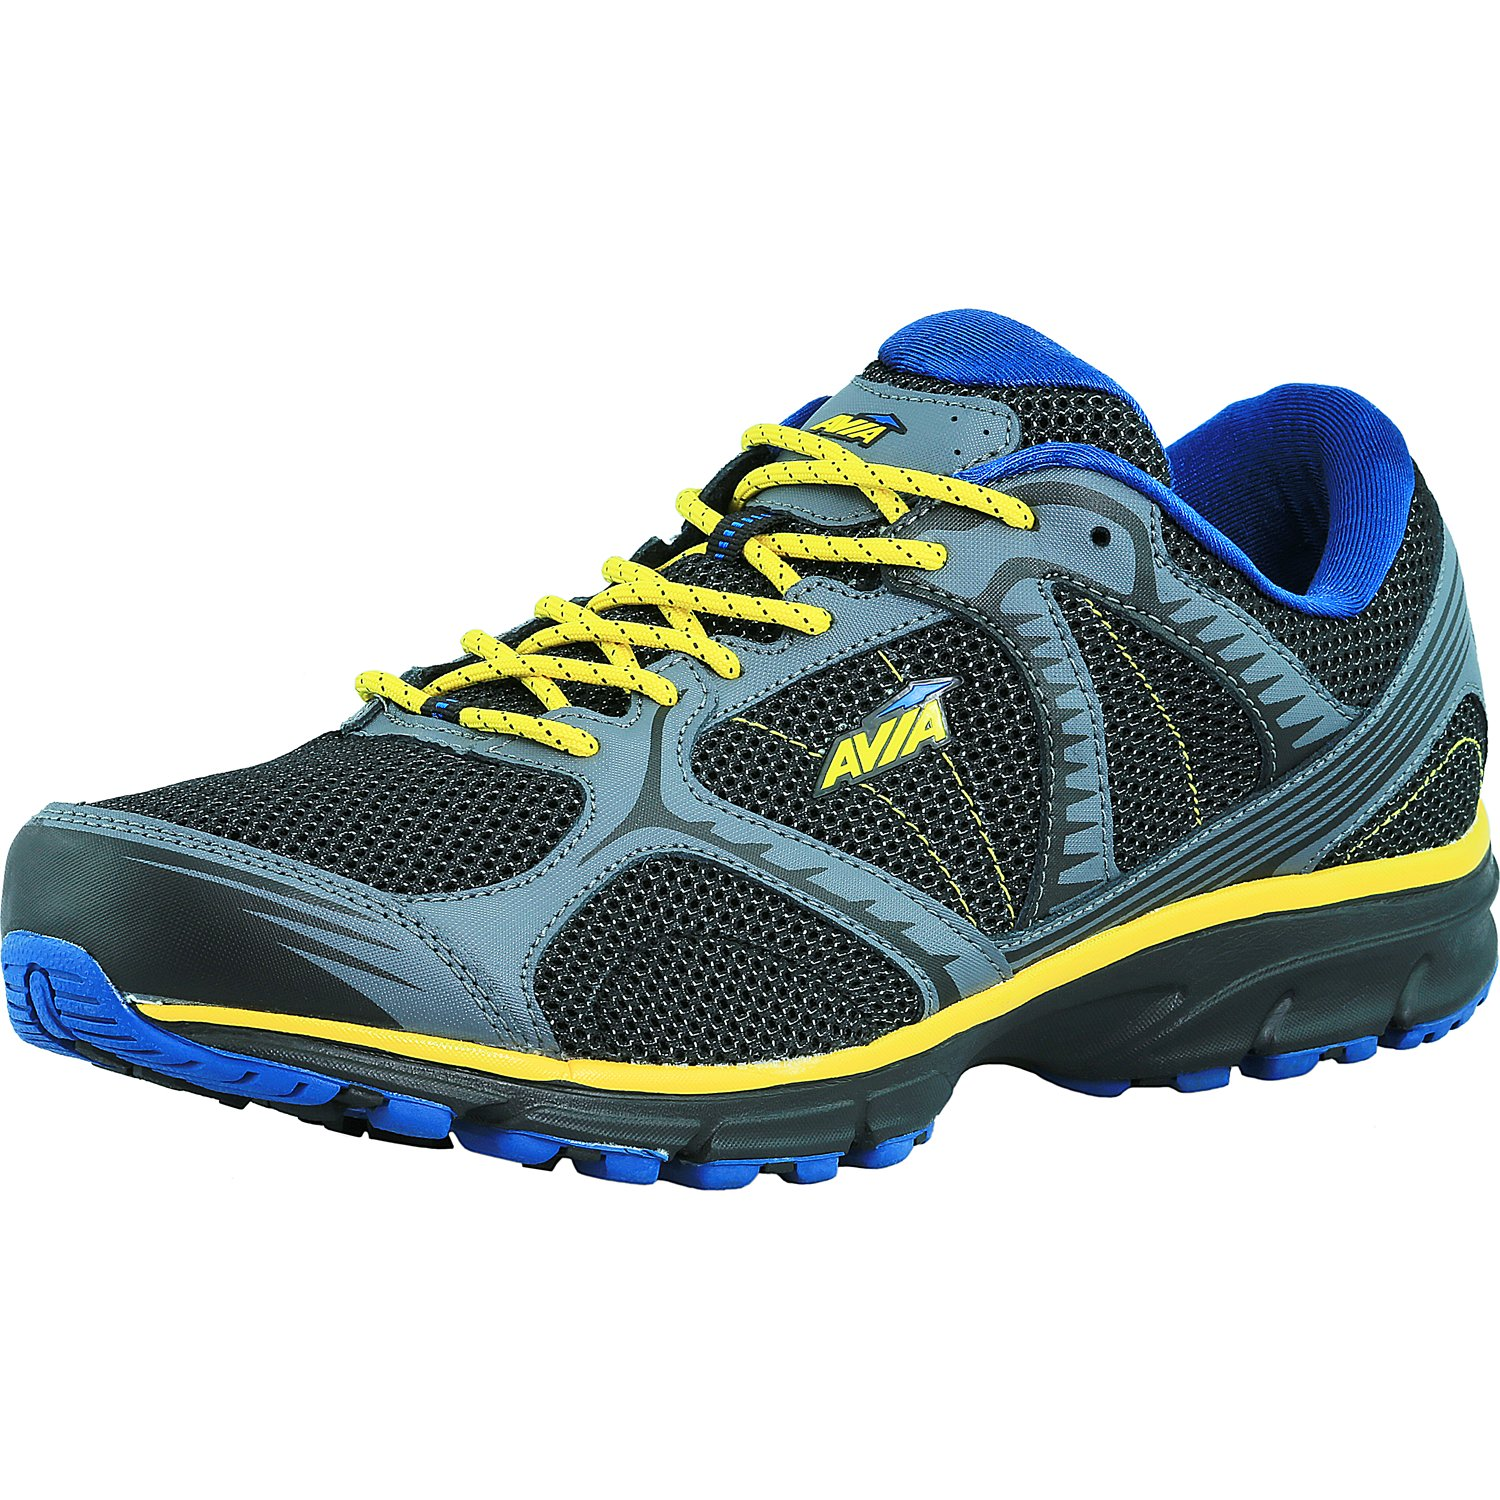 Avia Men's A5678Mbvd Black   Iron Grey   Glow Yellow   Royal Blue Ankle-High Running Shoe 14W by Avia